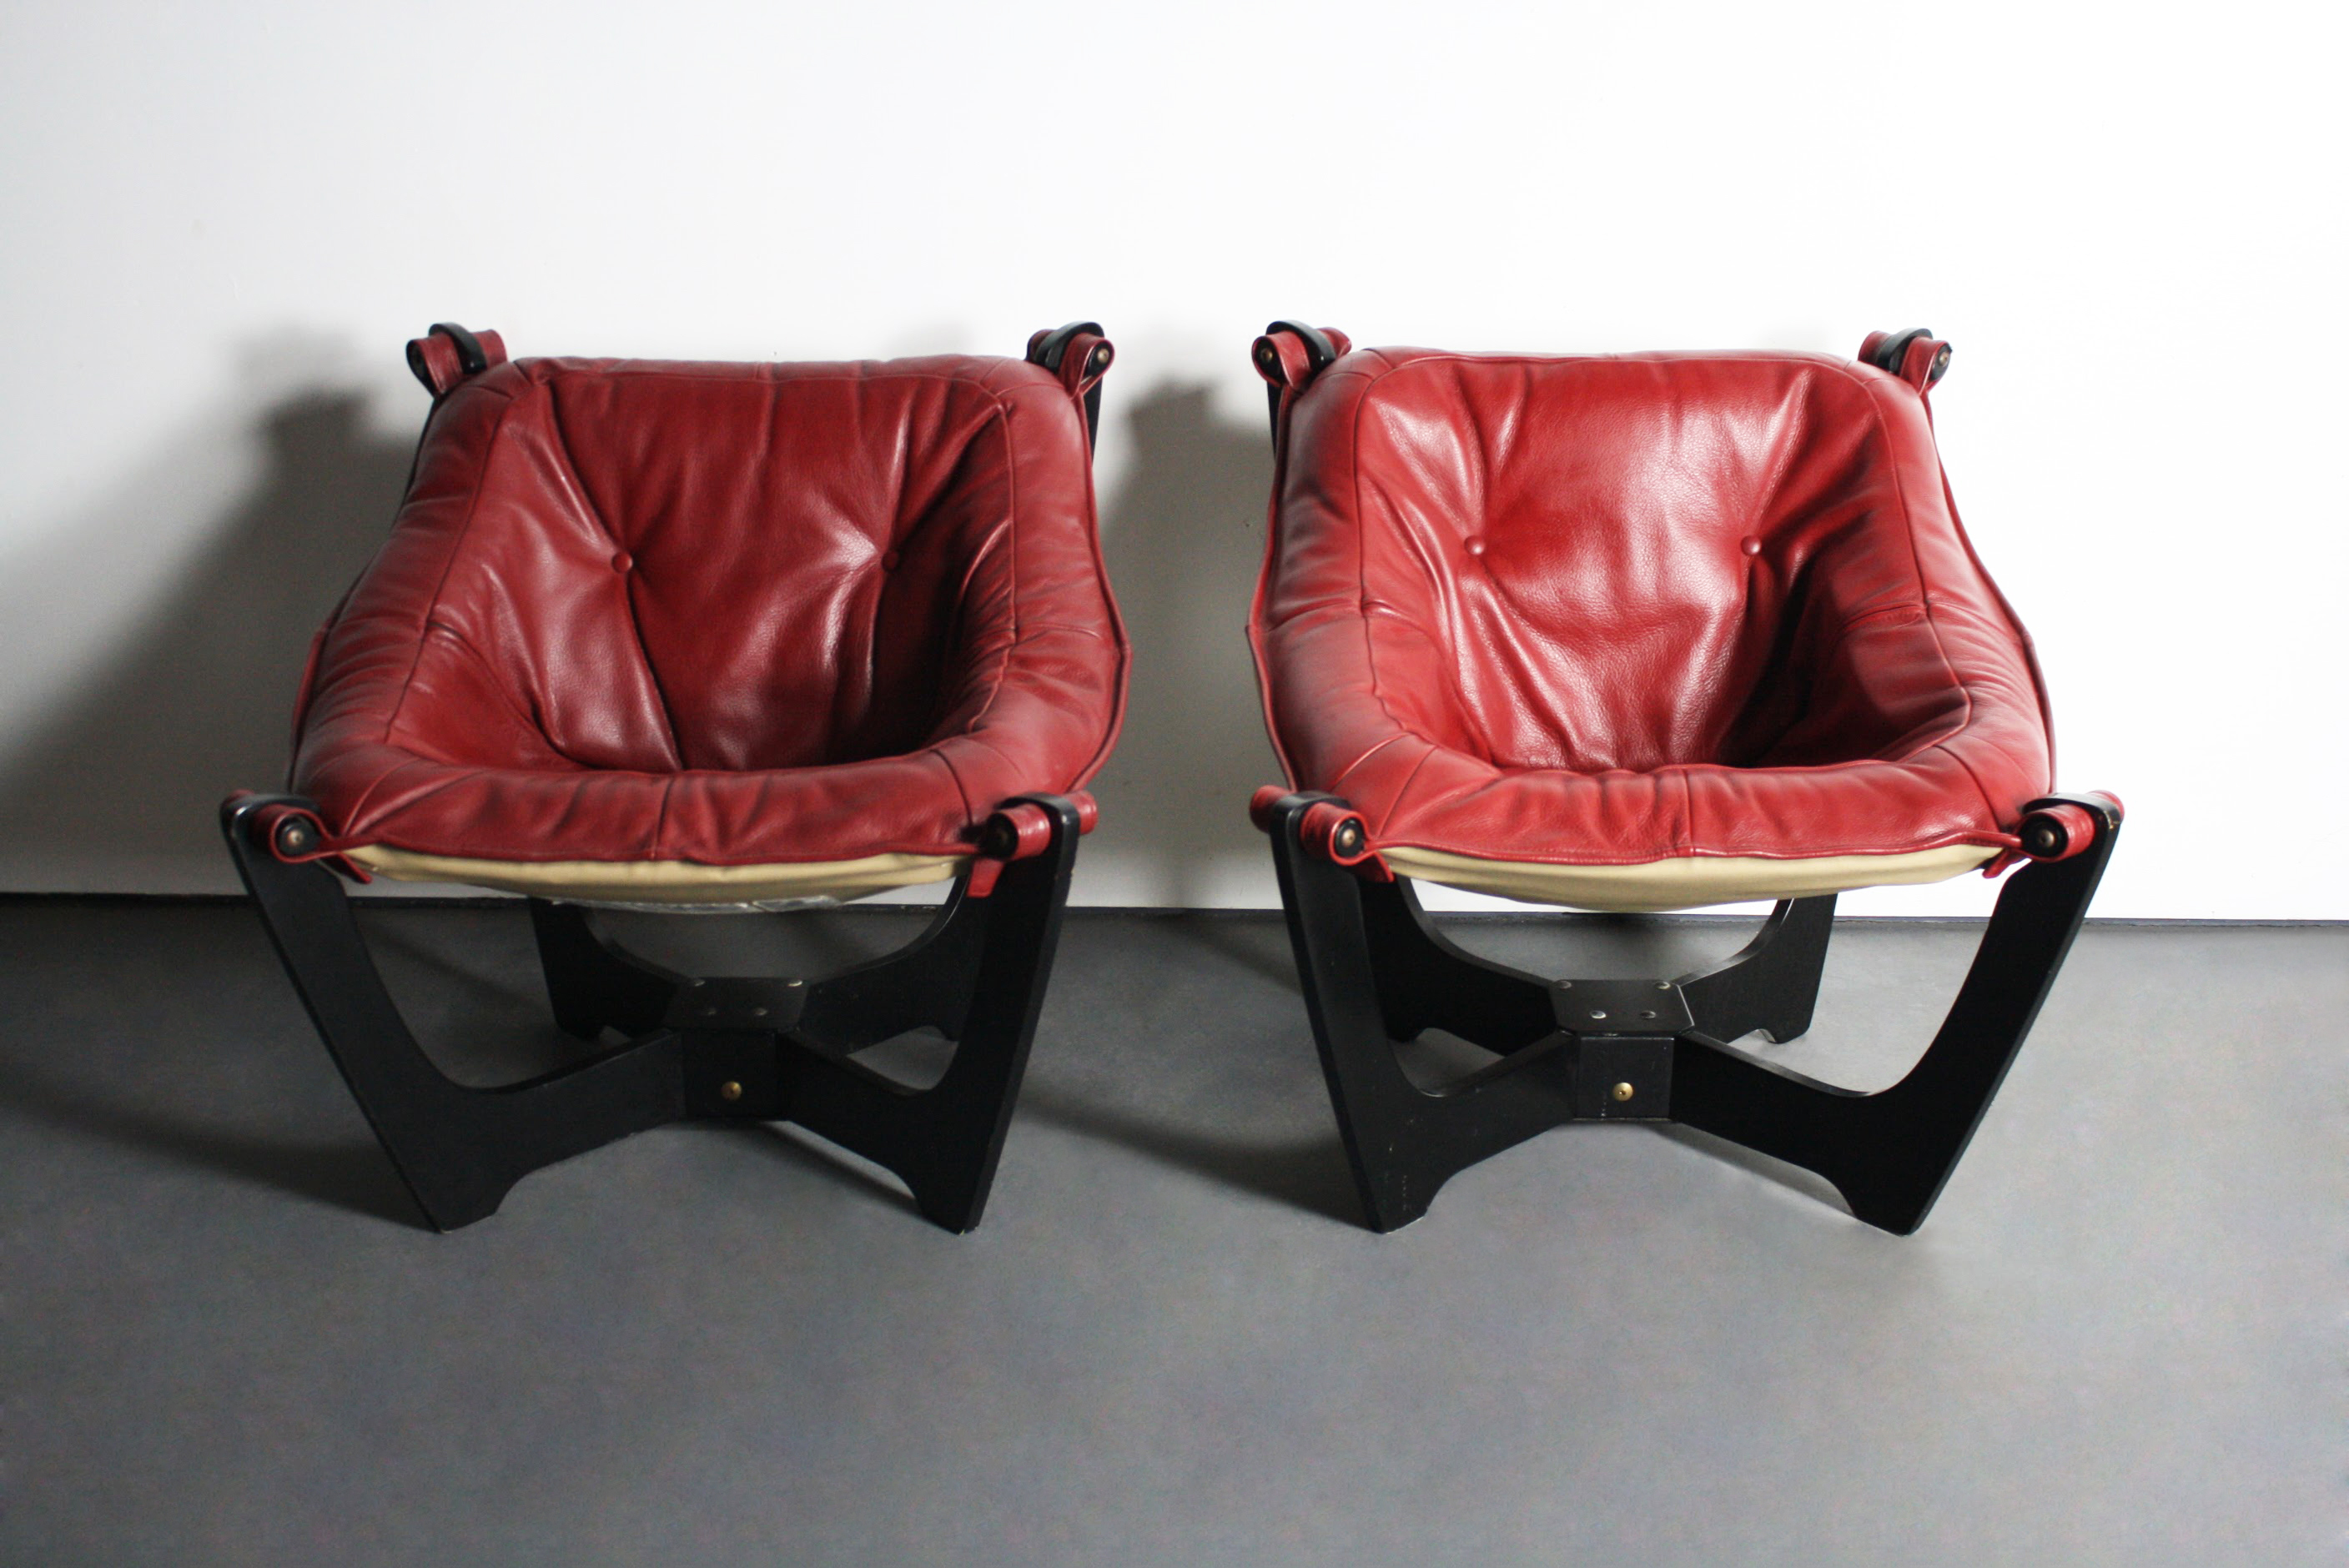 Odd Chairs img norway odd knutsen luna chairs - pair | chairish